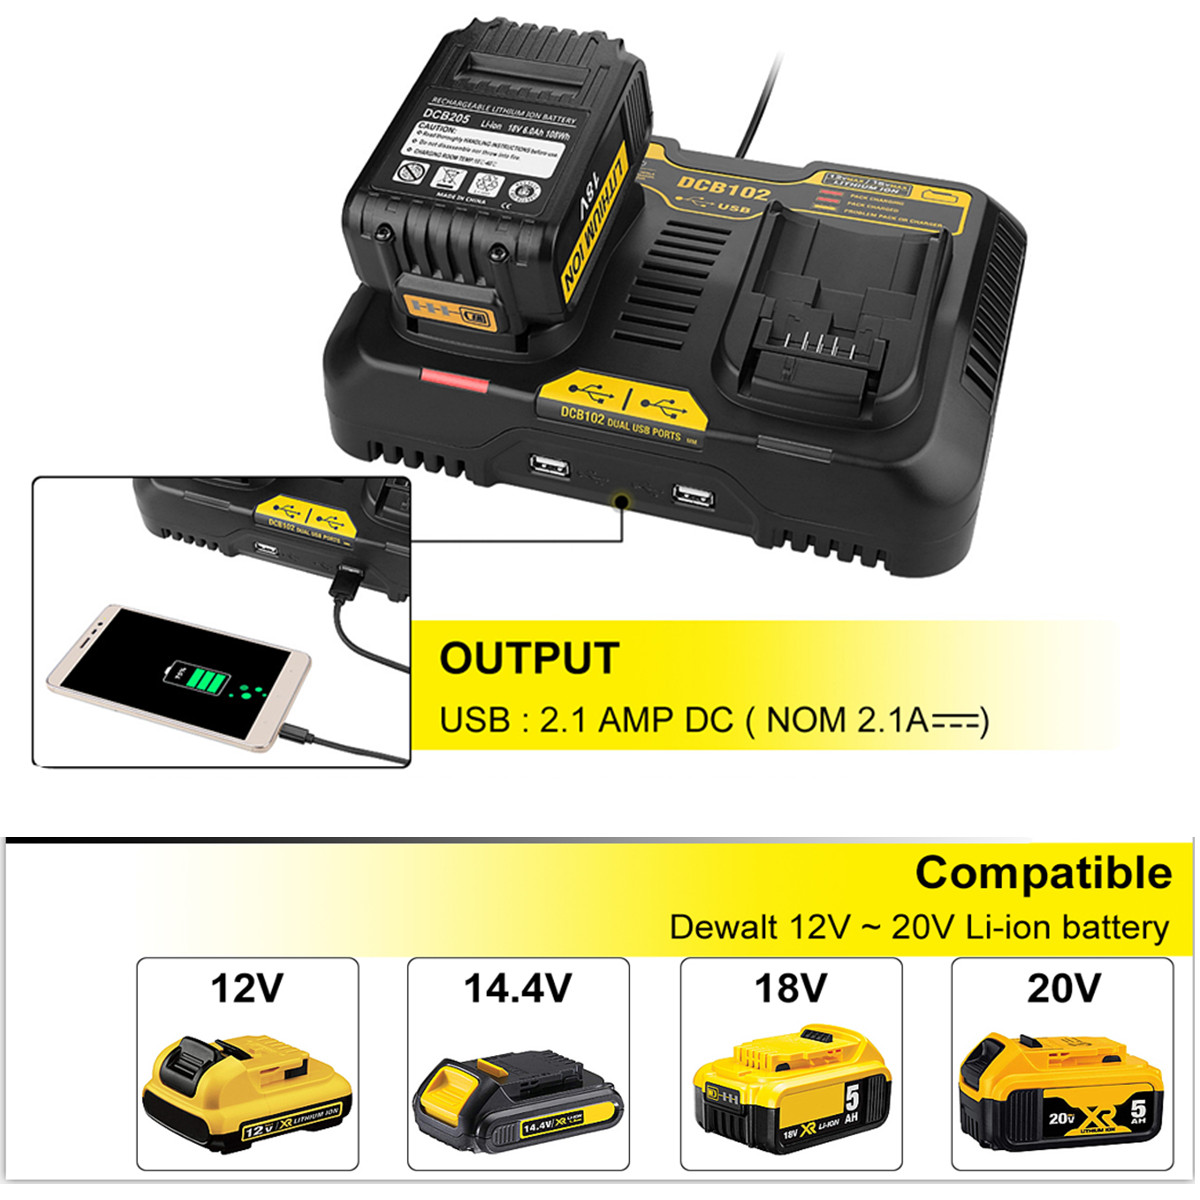 Li-Ion Battery Charger 4.5A Max For Dewalt 10.8V 12V 14.4V 18V 20V  DCB105 DCB101 DCB102 DCB112 DCB205 With Dual USB Port